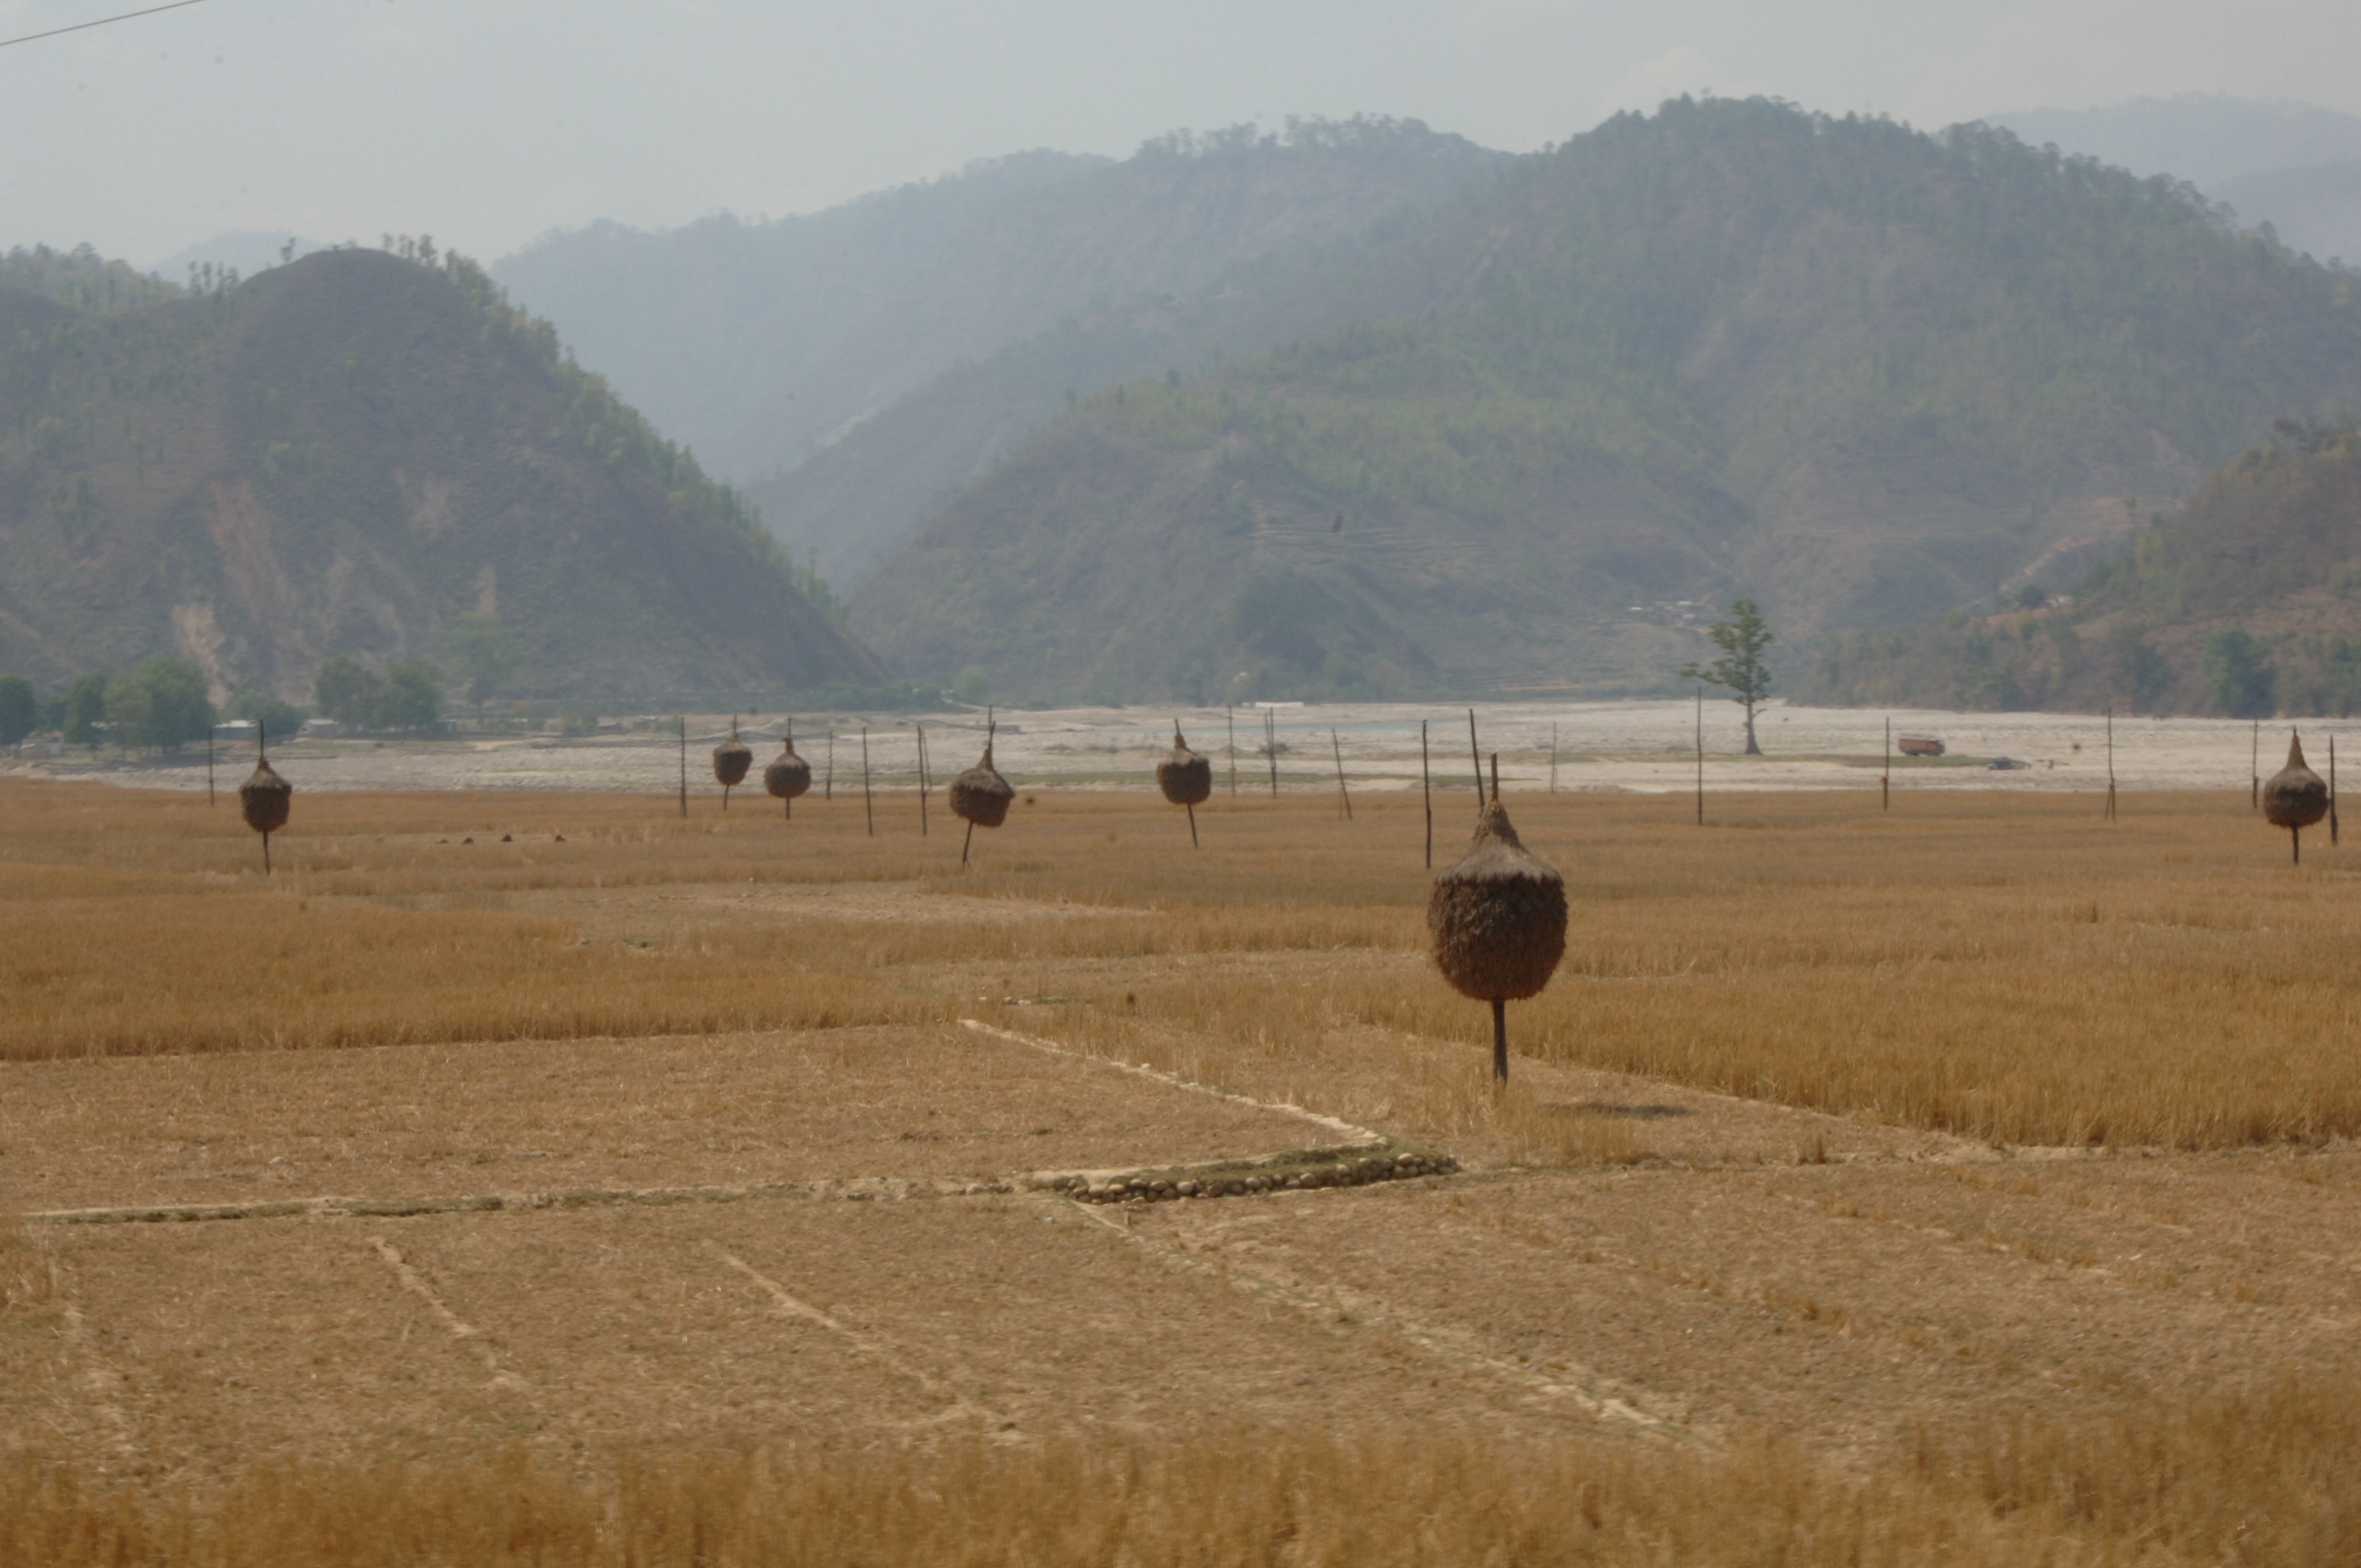 Farmed fields with harvested crops in Nepal